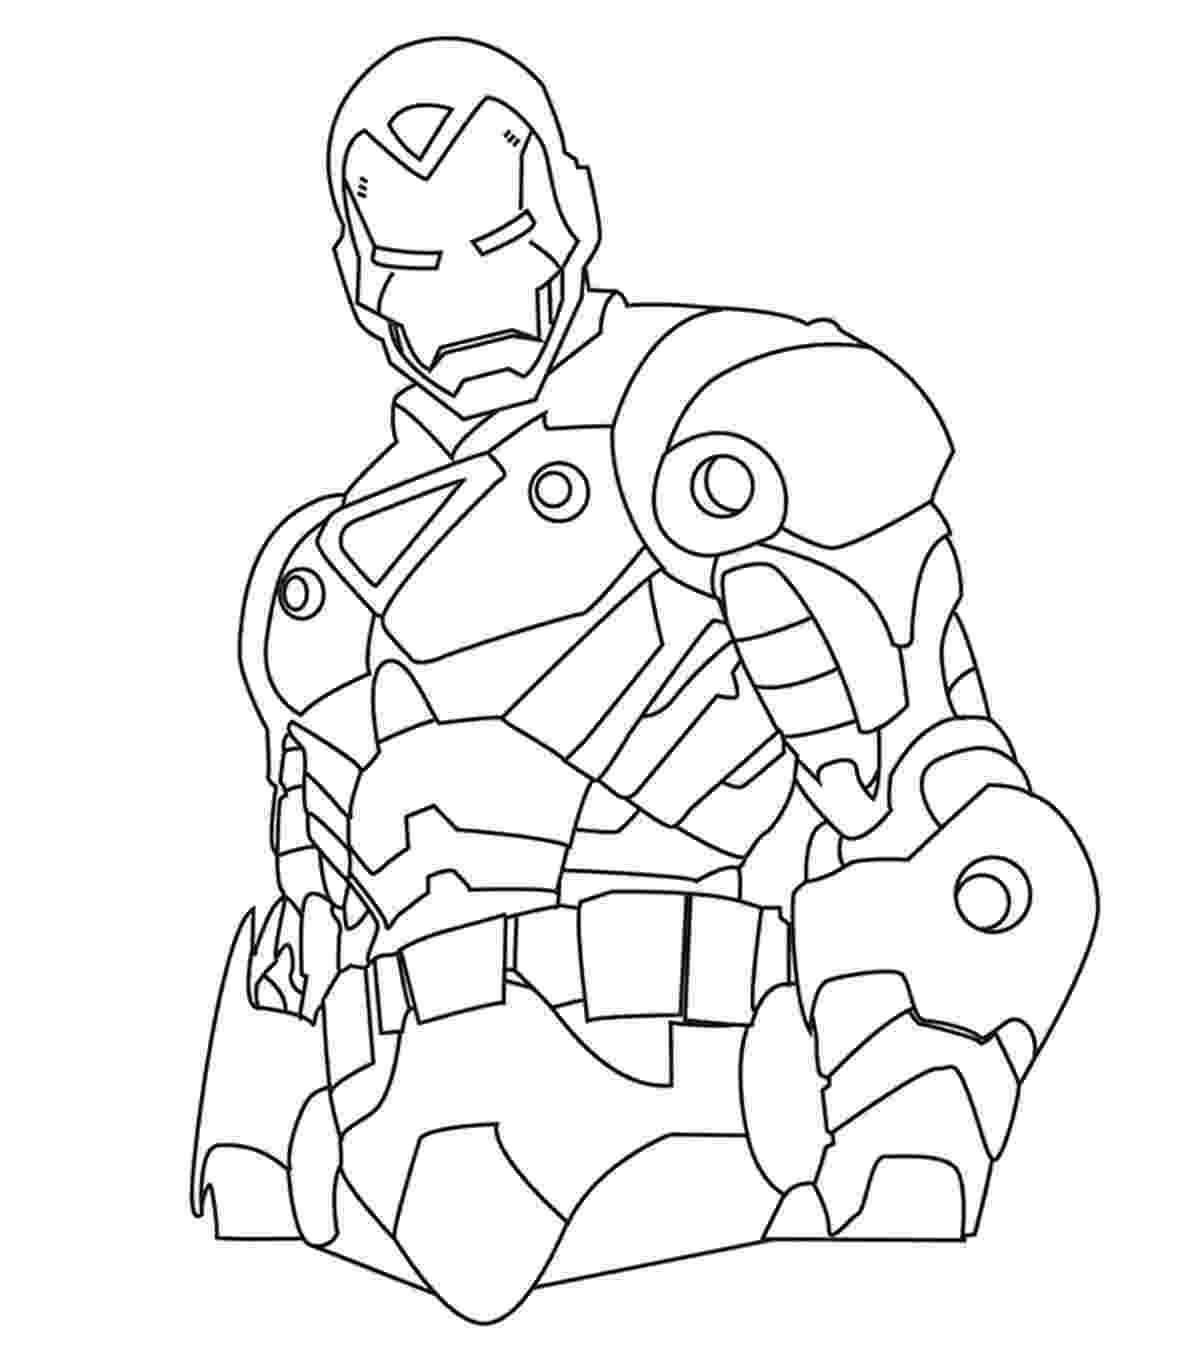 iron man color page iron man coloring pages free printable coloring pages iron color page man